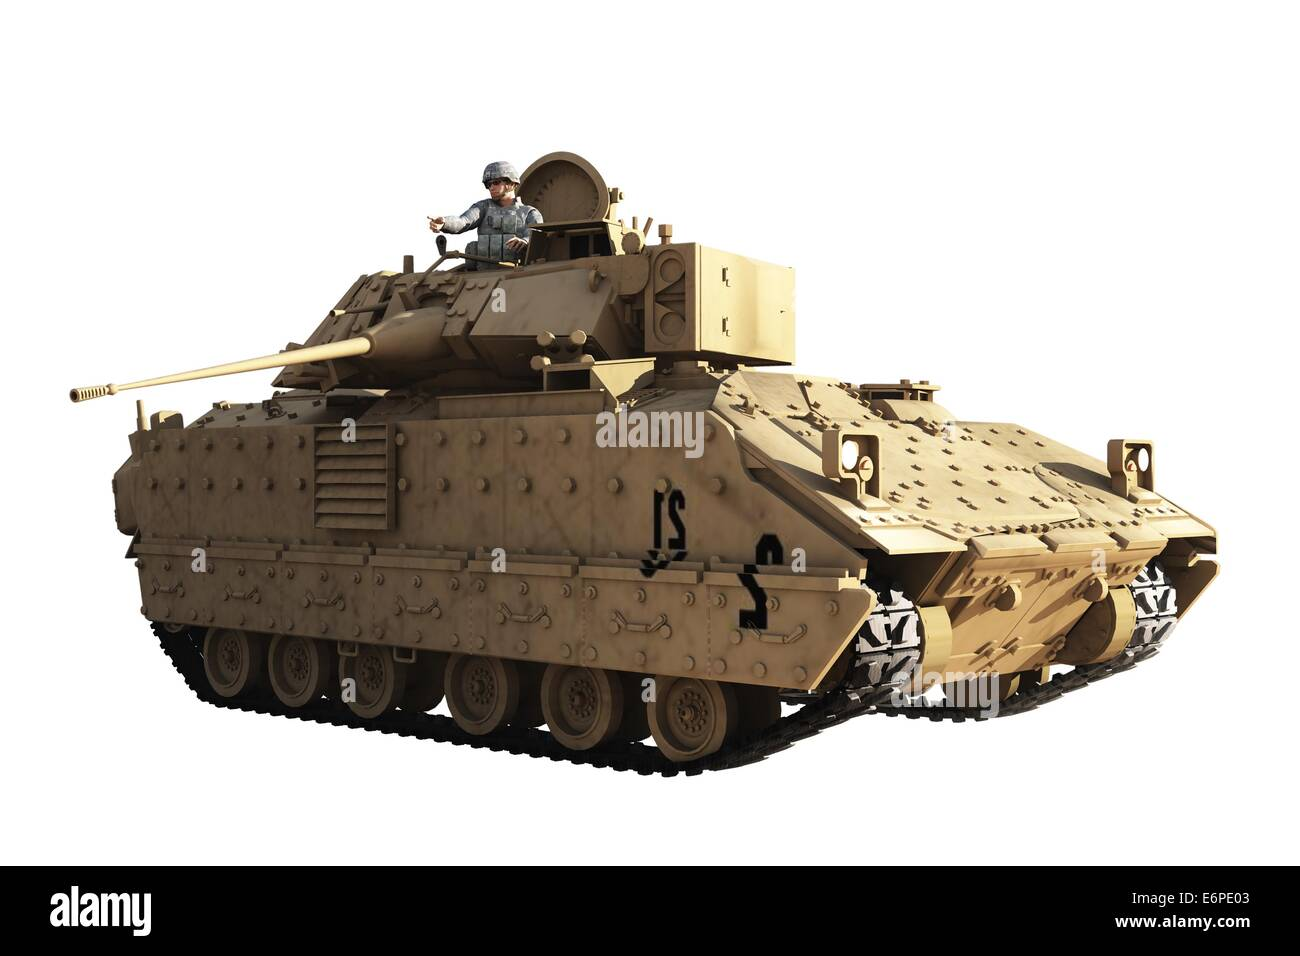 Officer commanding tank stands at open hatch - Stock Image